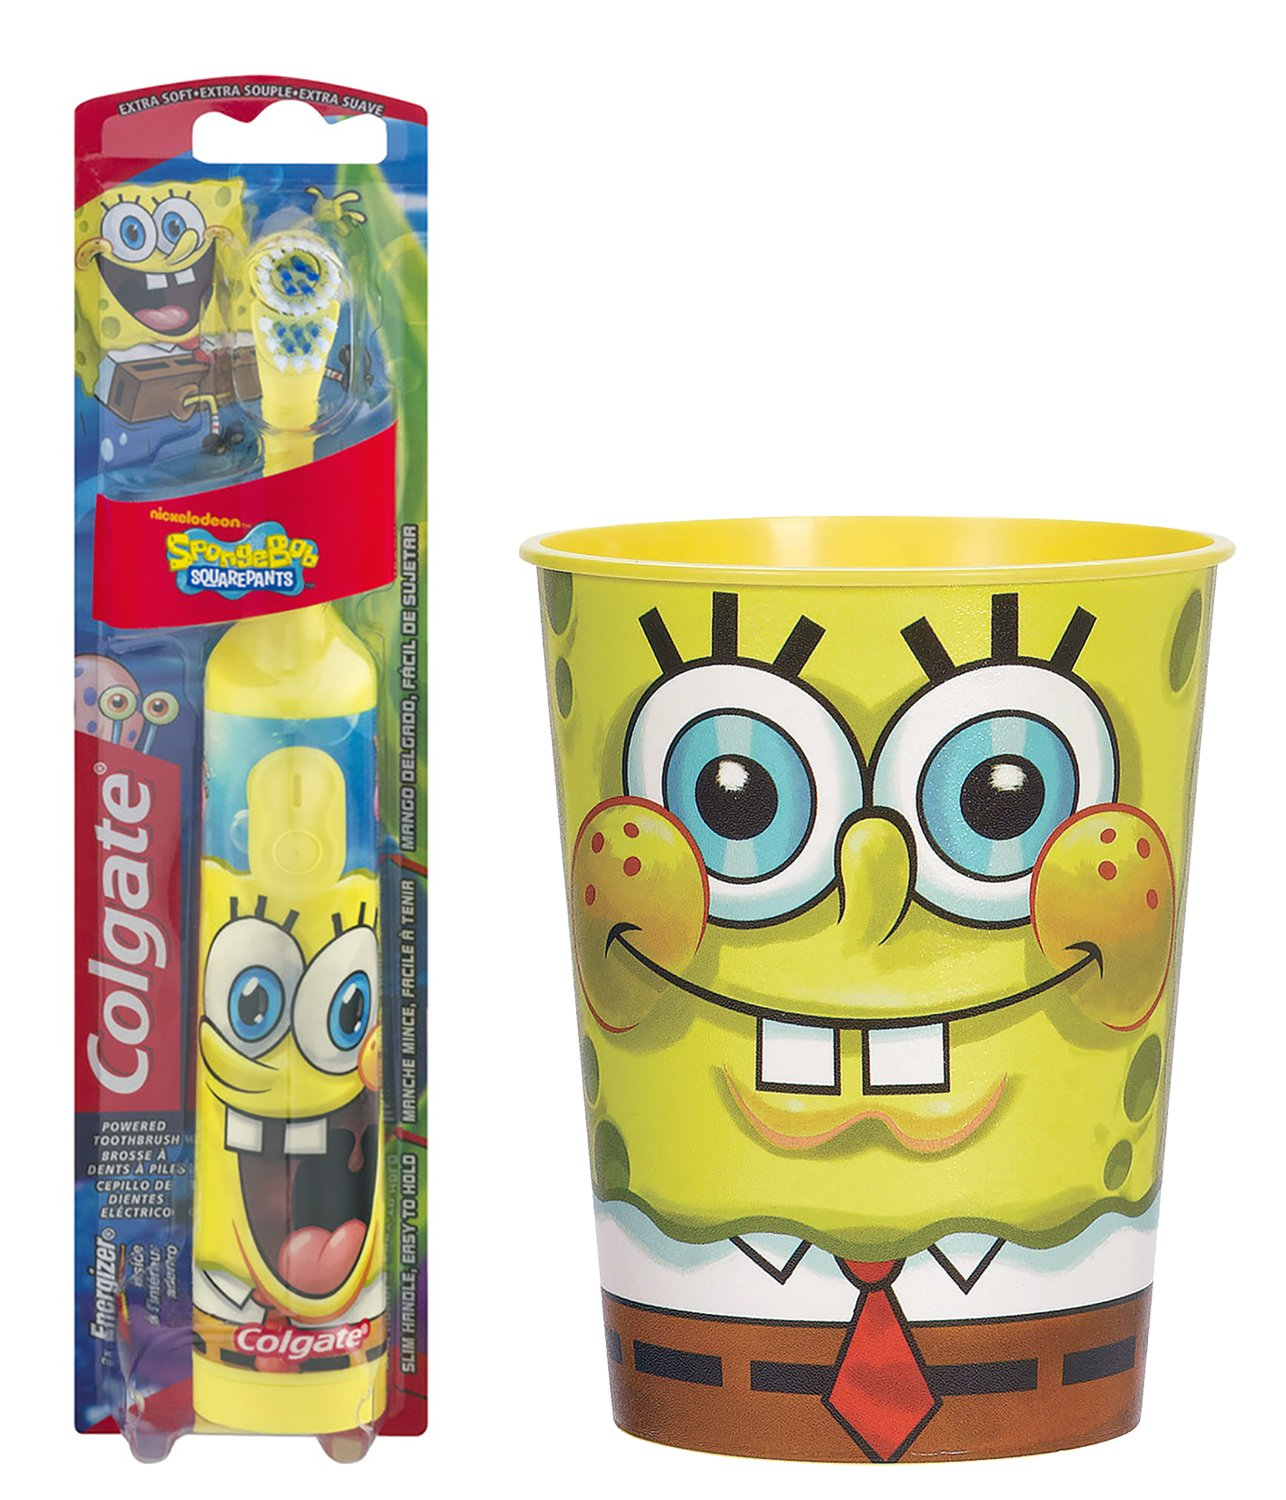 Amazon.com: Spongebob Toothbrush Bundle: 2 Items - Powered Toothbrush, Kids Character Rinse Cup: Beauty